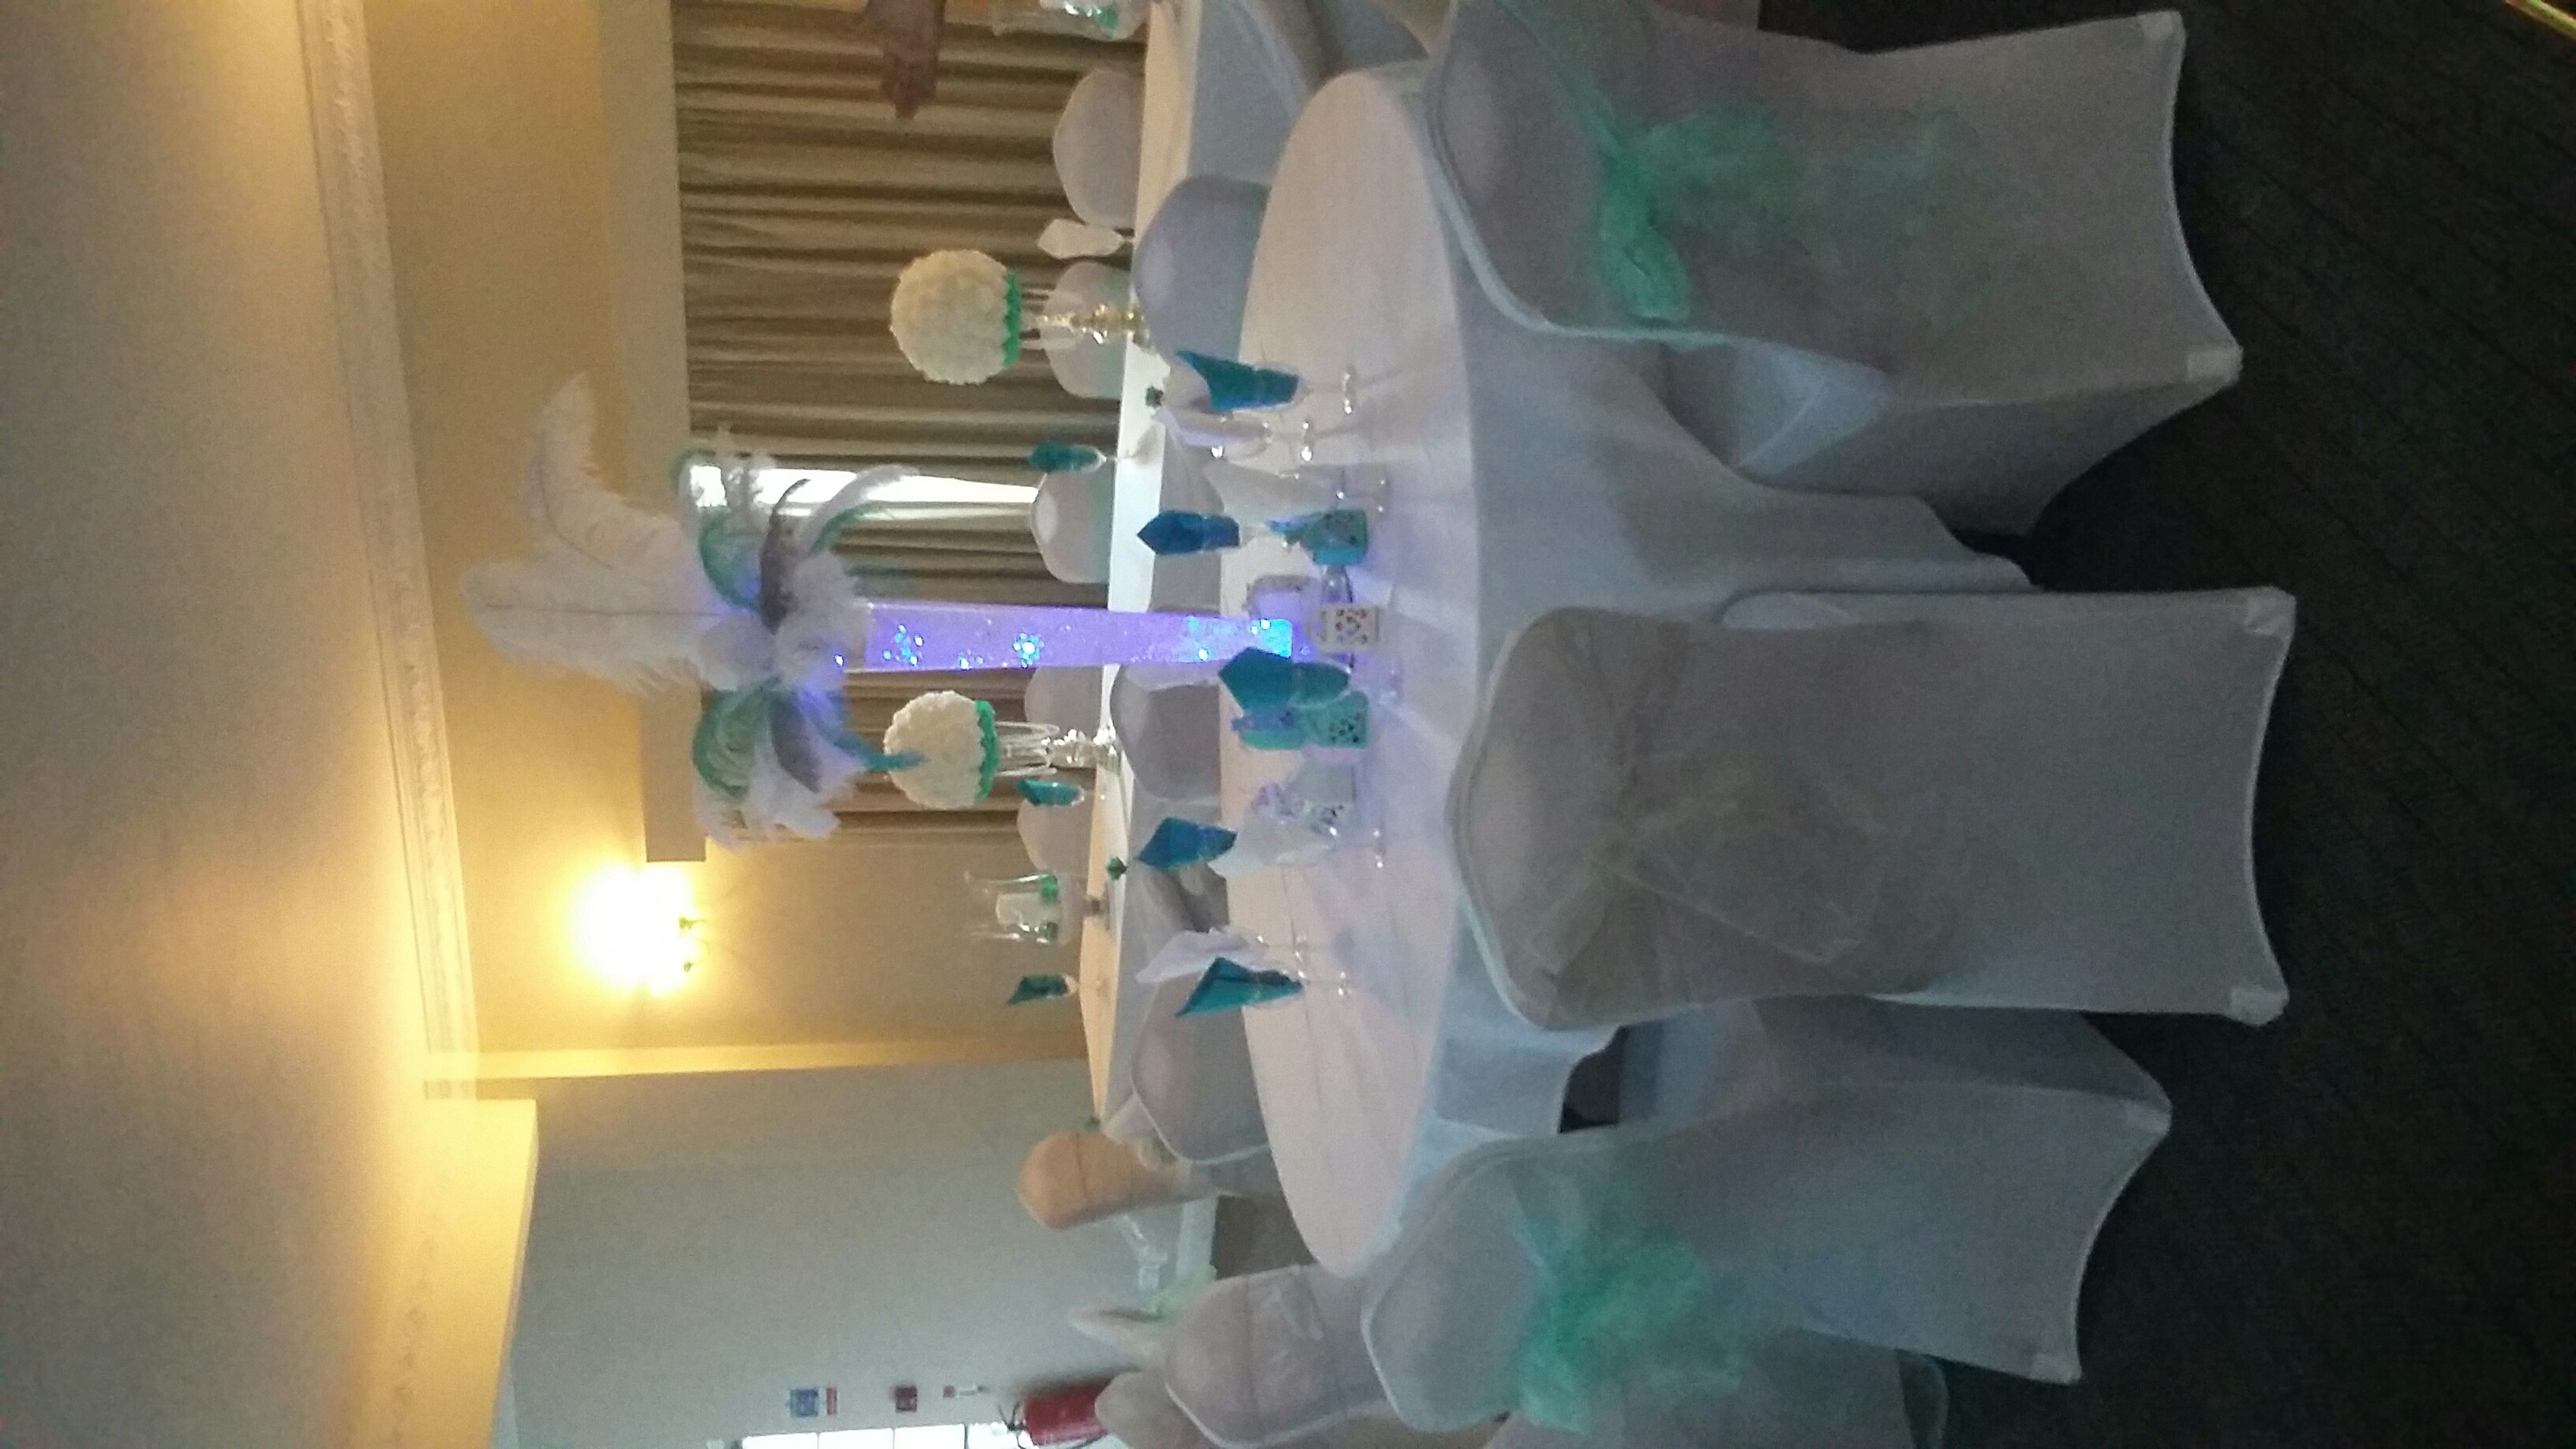 chair cover hire tamworth hanging modern wedding local classifieds in lancashire preloved for our lovely stretch spandex covers and sashes lots of colour sash choices we cater all events weddings parties birthdays price includes